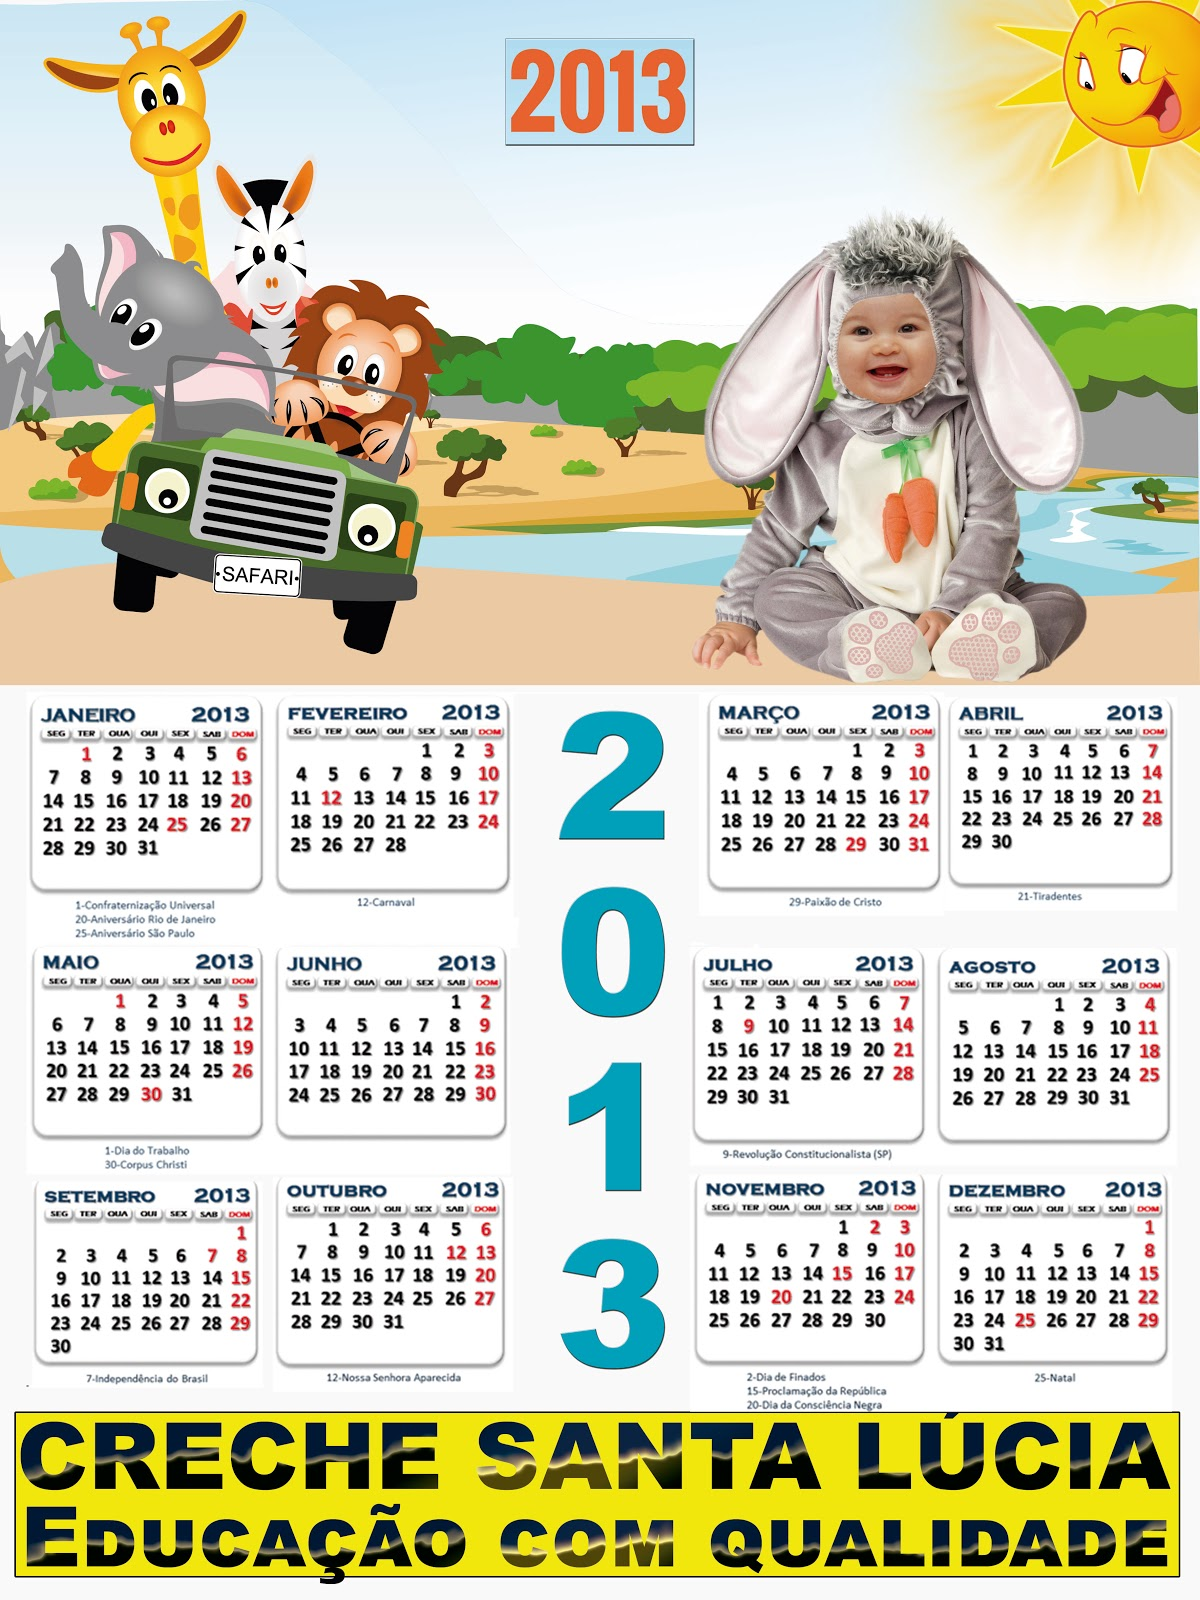 Calendario 2013 PSD CYMK Totalmente Editavel No Photoshop Grid